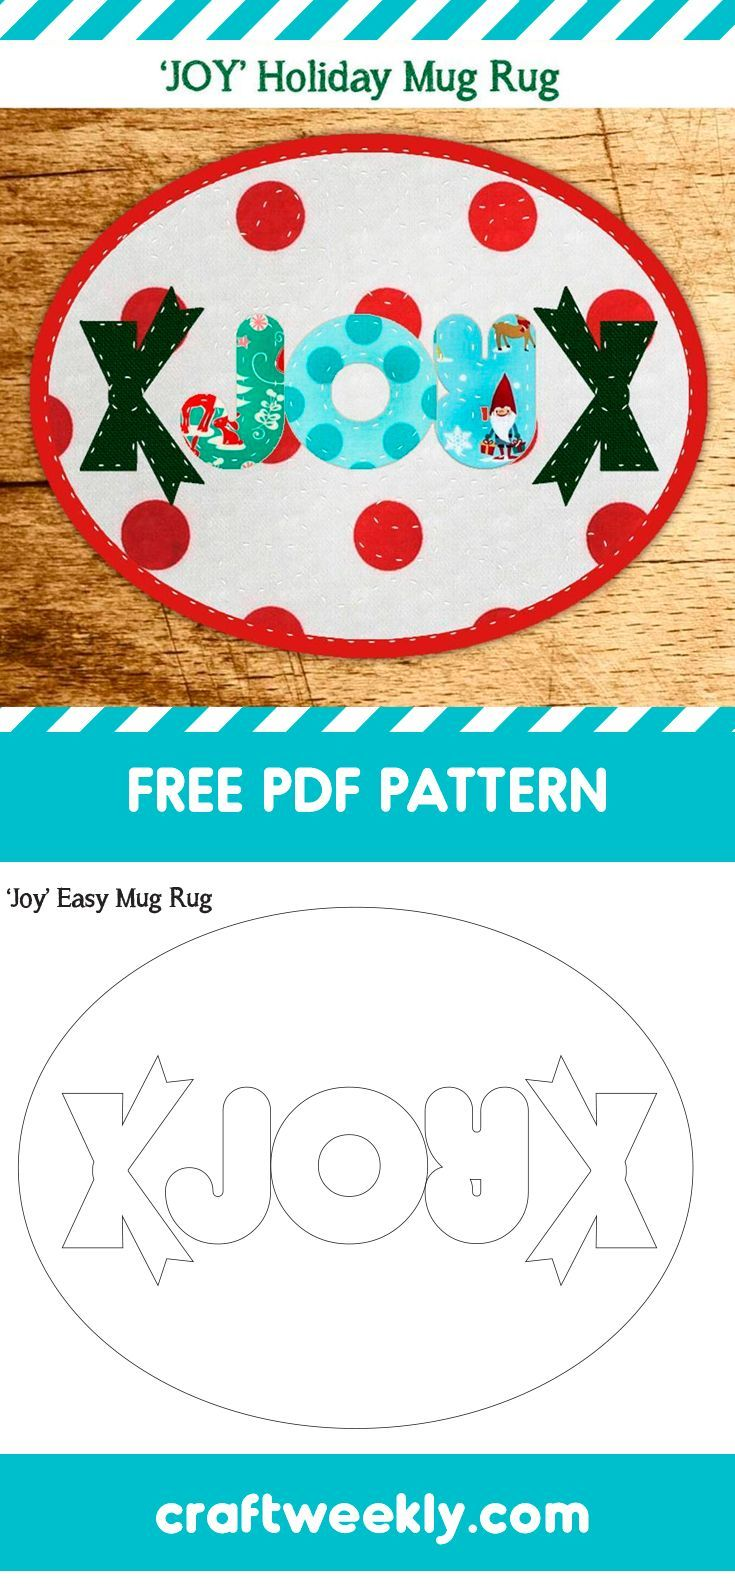 1d6de77a4ee04 LOVE this free PDF pattern for a mug rug. Perfect for a quick DIY Christmas  gift or just a holiday sewing project. #christmascrafts #sewing #freepattern